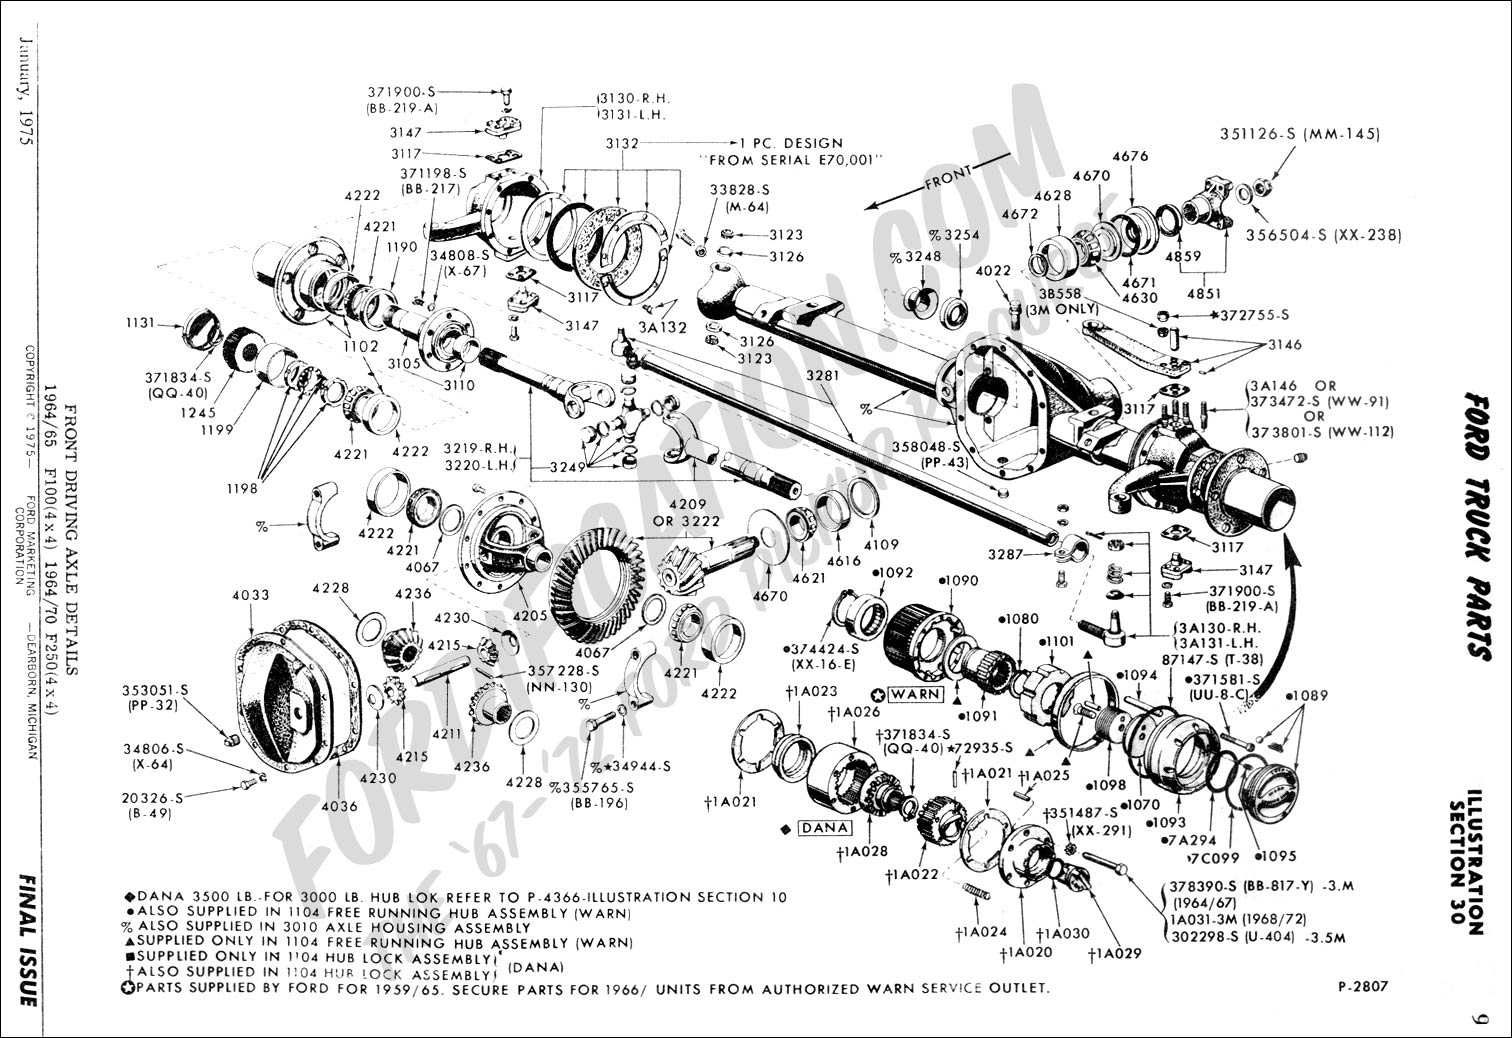 Nissan Schematic Diagram 01, Nissan, Free Engine Image For